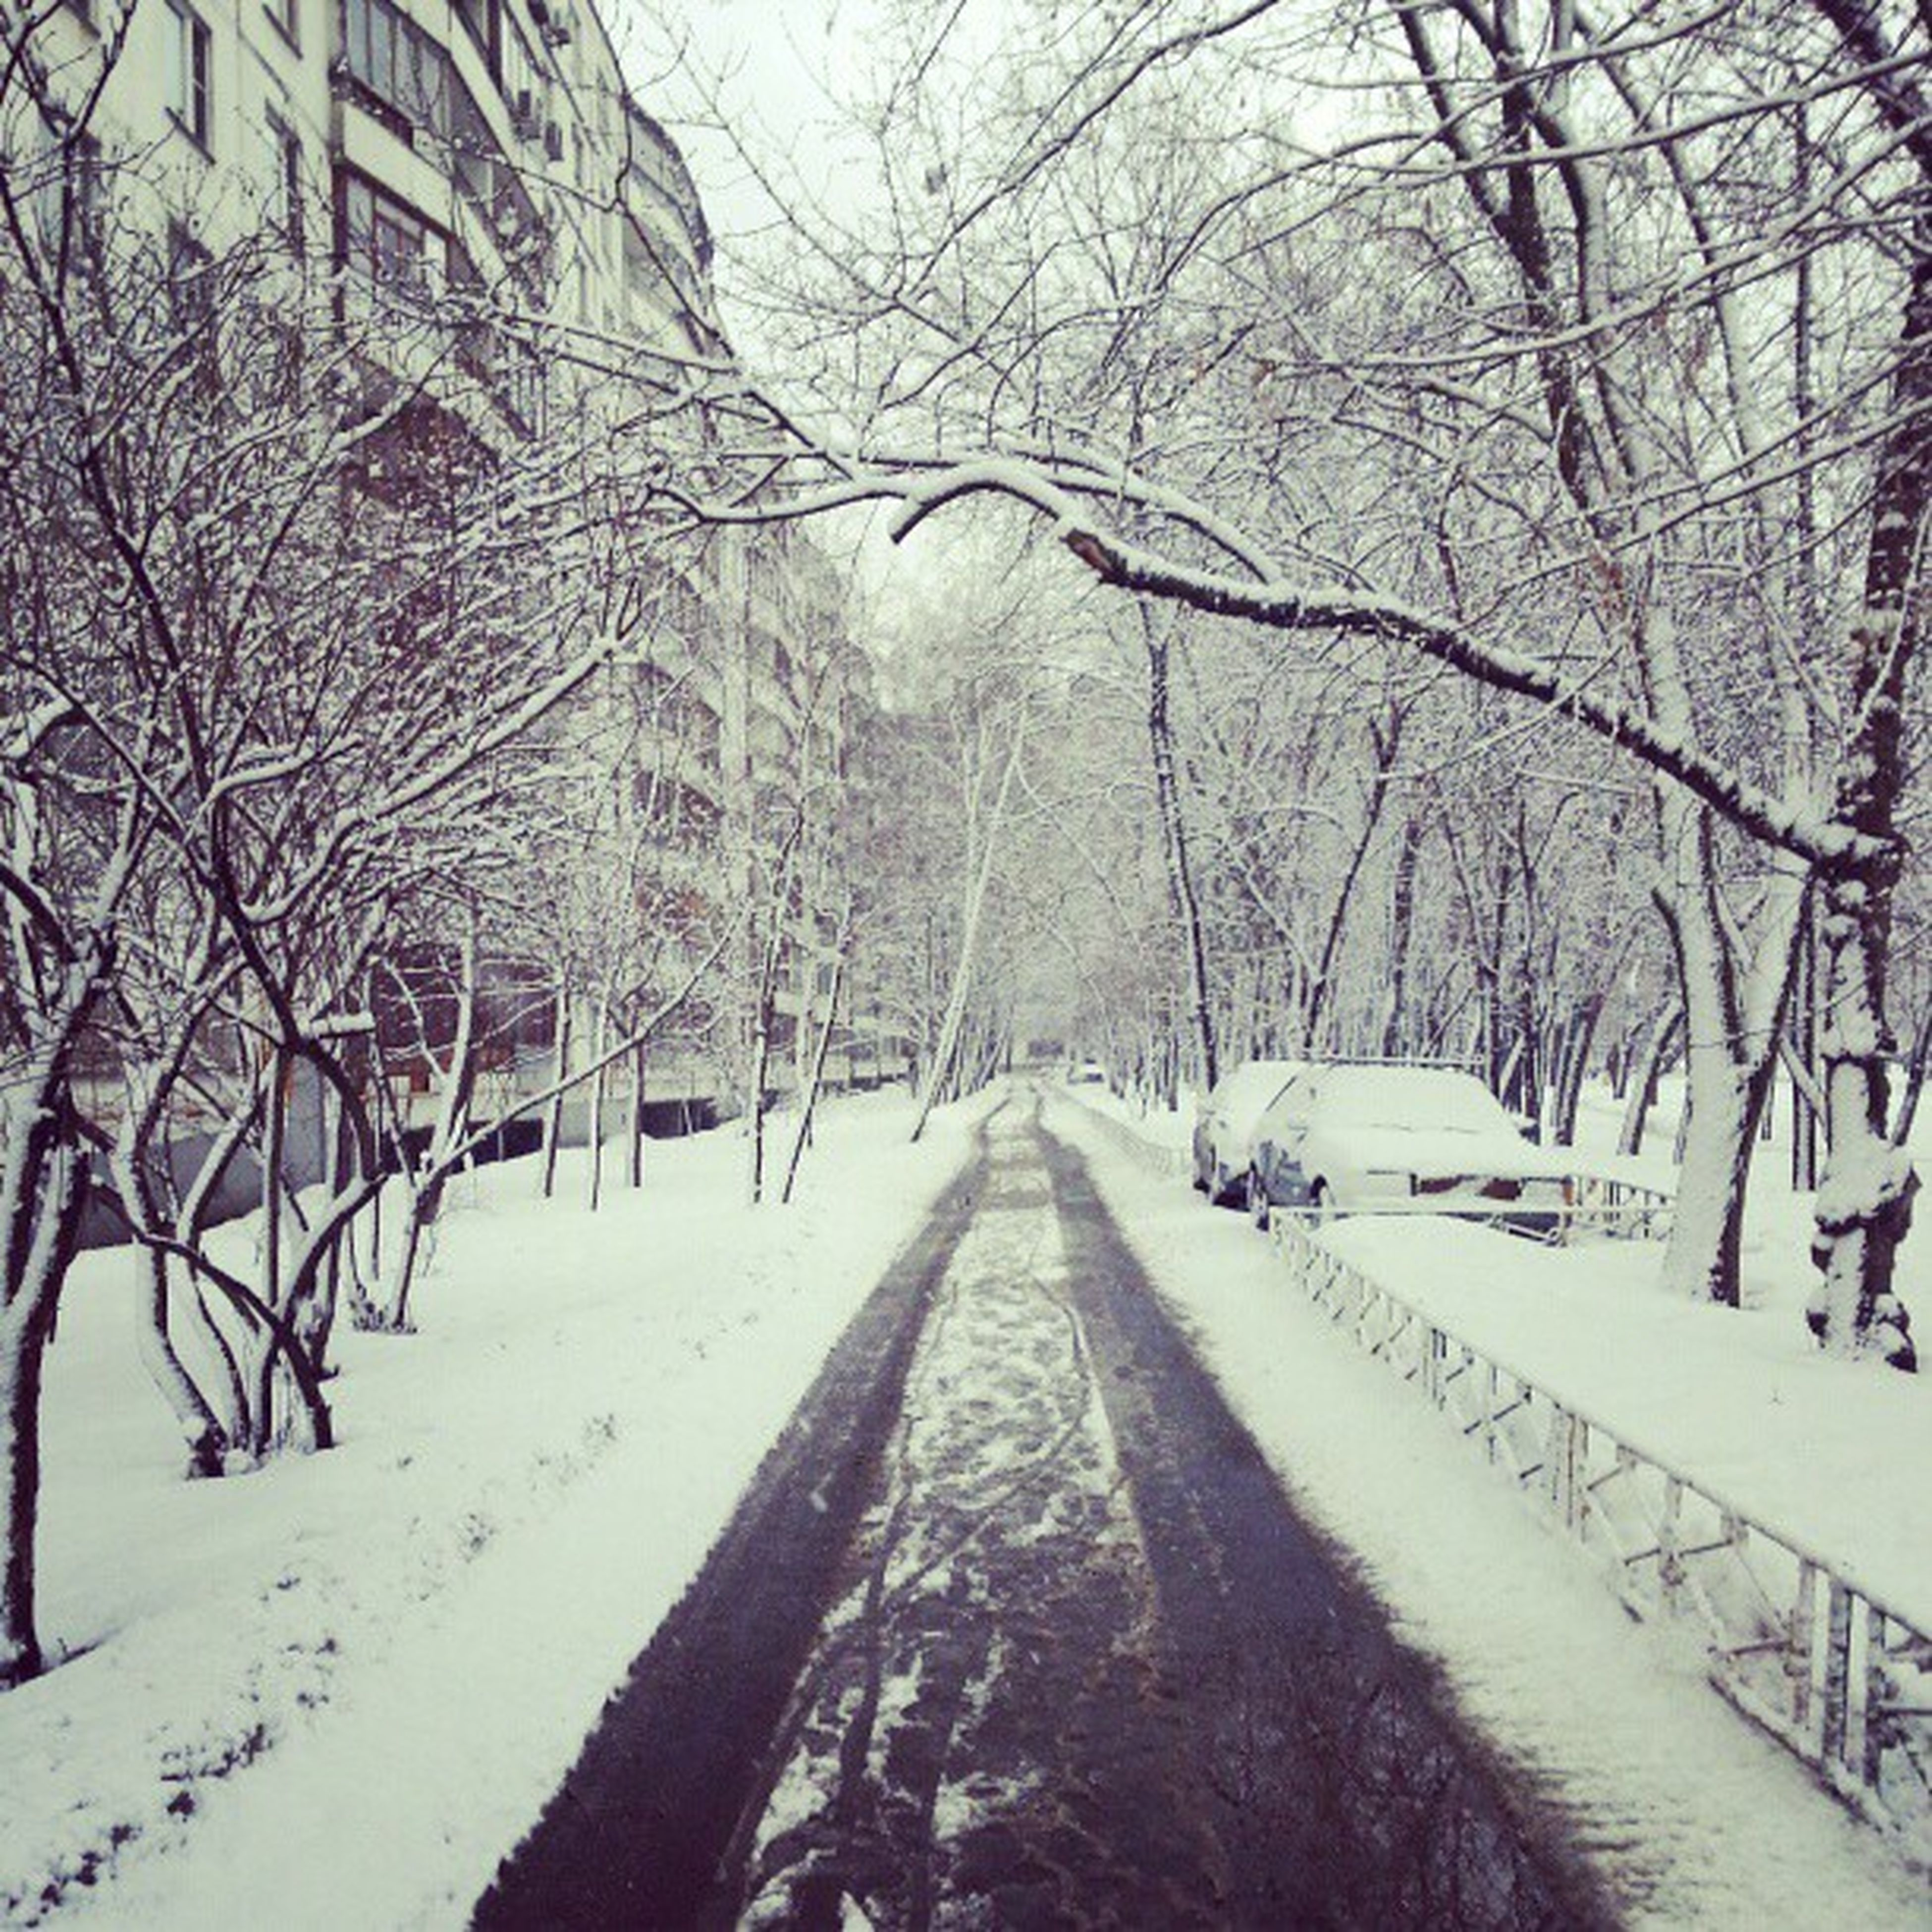 snow, winter, cold temperature, tree, the way forward, season, bare tree, weather, covering, transportation, diminishing perspective, road, branch, vanishing point, nature, treelined, tranquil scene, white color, street, tranquility